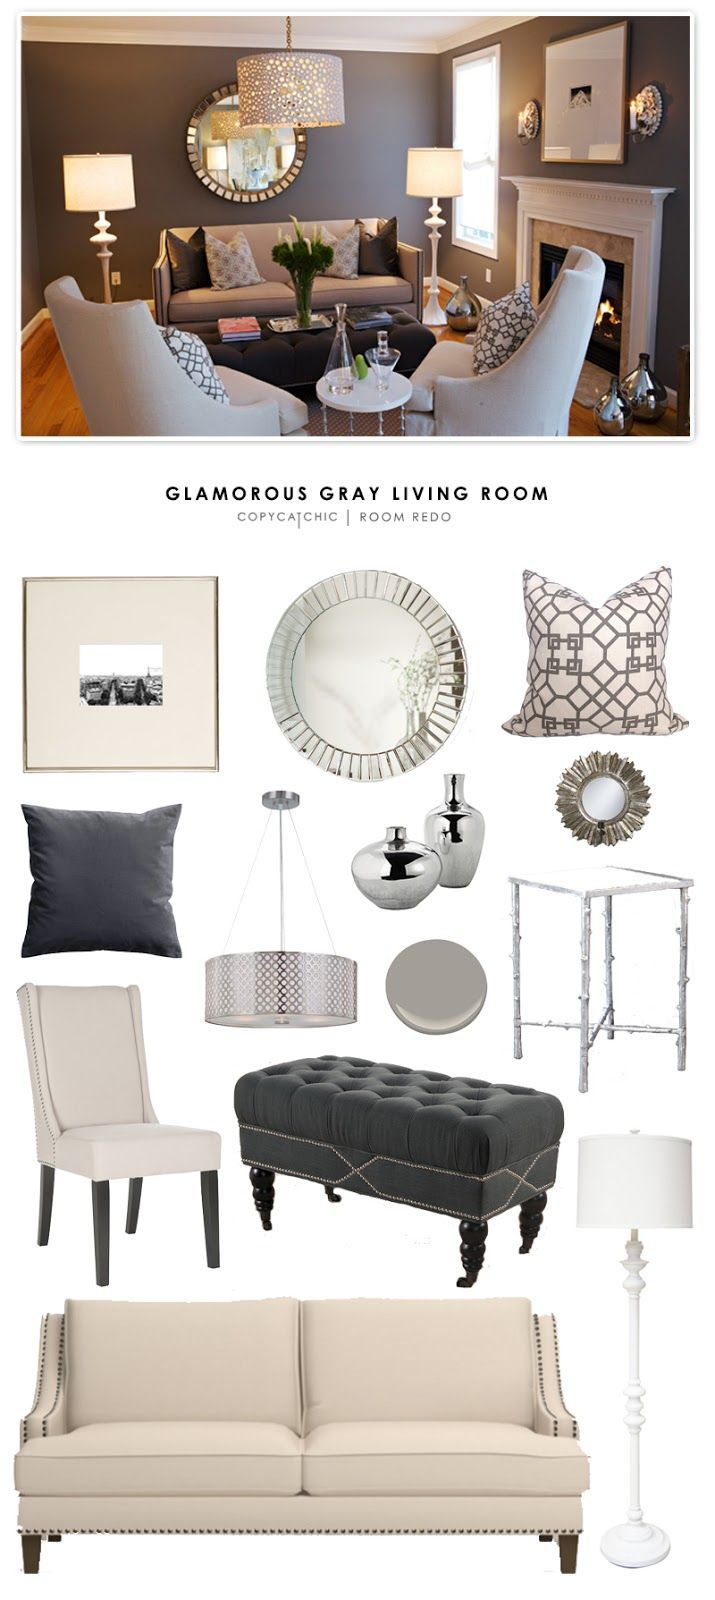 Copy cat chic room redo glamorous gray living room for Living room update ideas